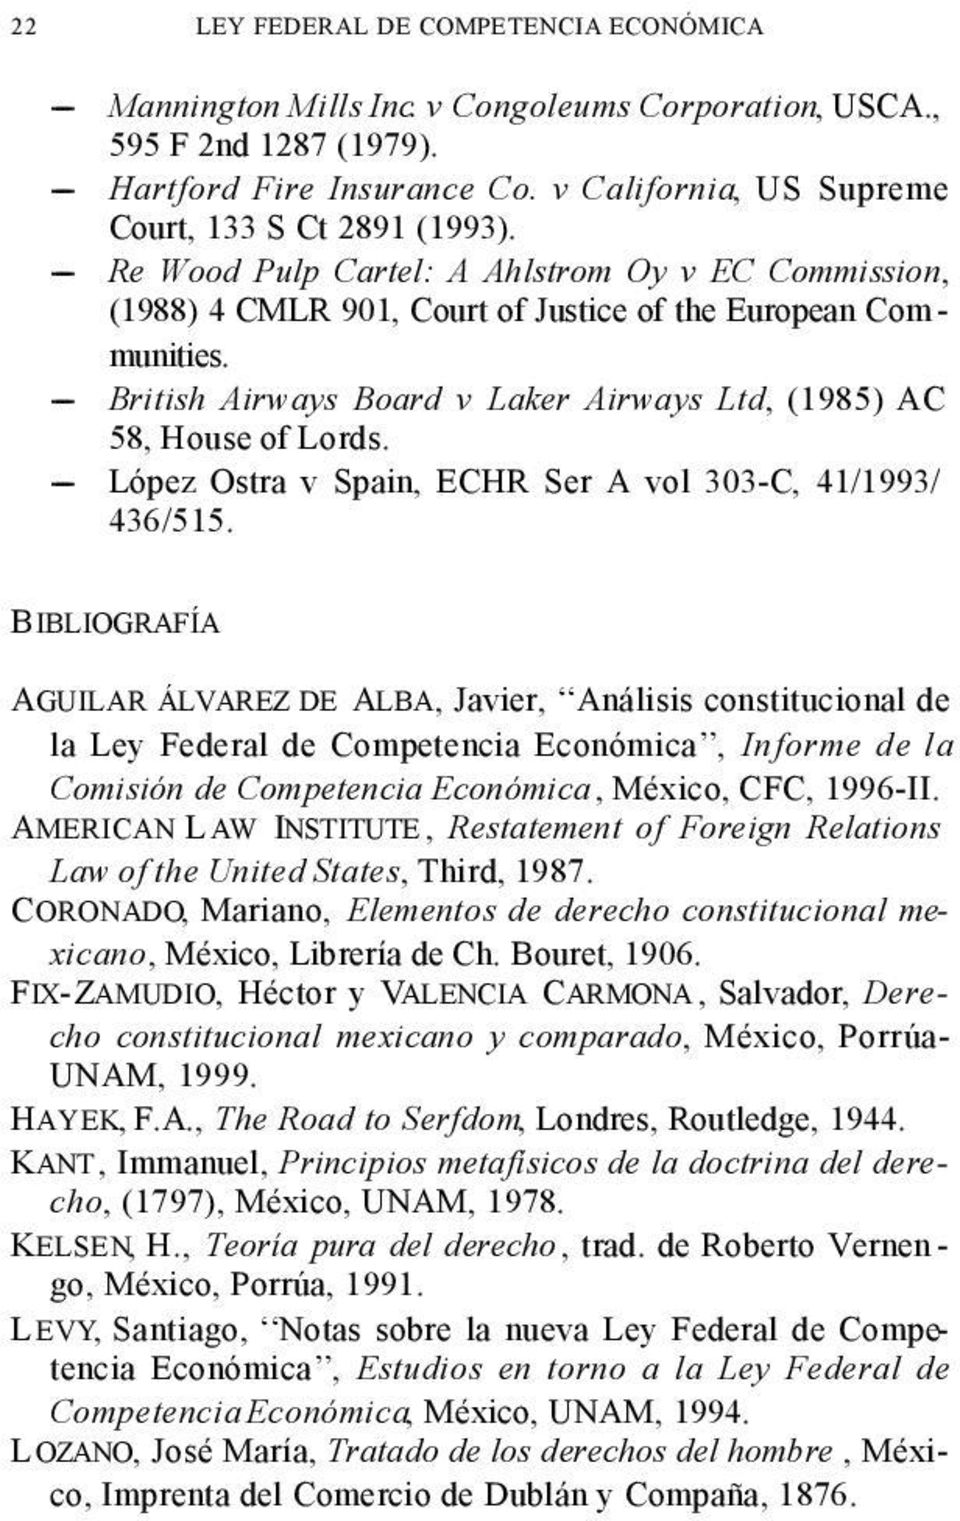 ---- British Airways Board v Laker Airways Ltd, (1985) AC 58, House of Lords. ---- López Ostra v Spain, ECHR Ser A vol 303-C, 41/1993/ 436/515.